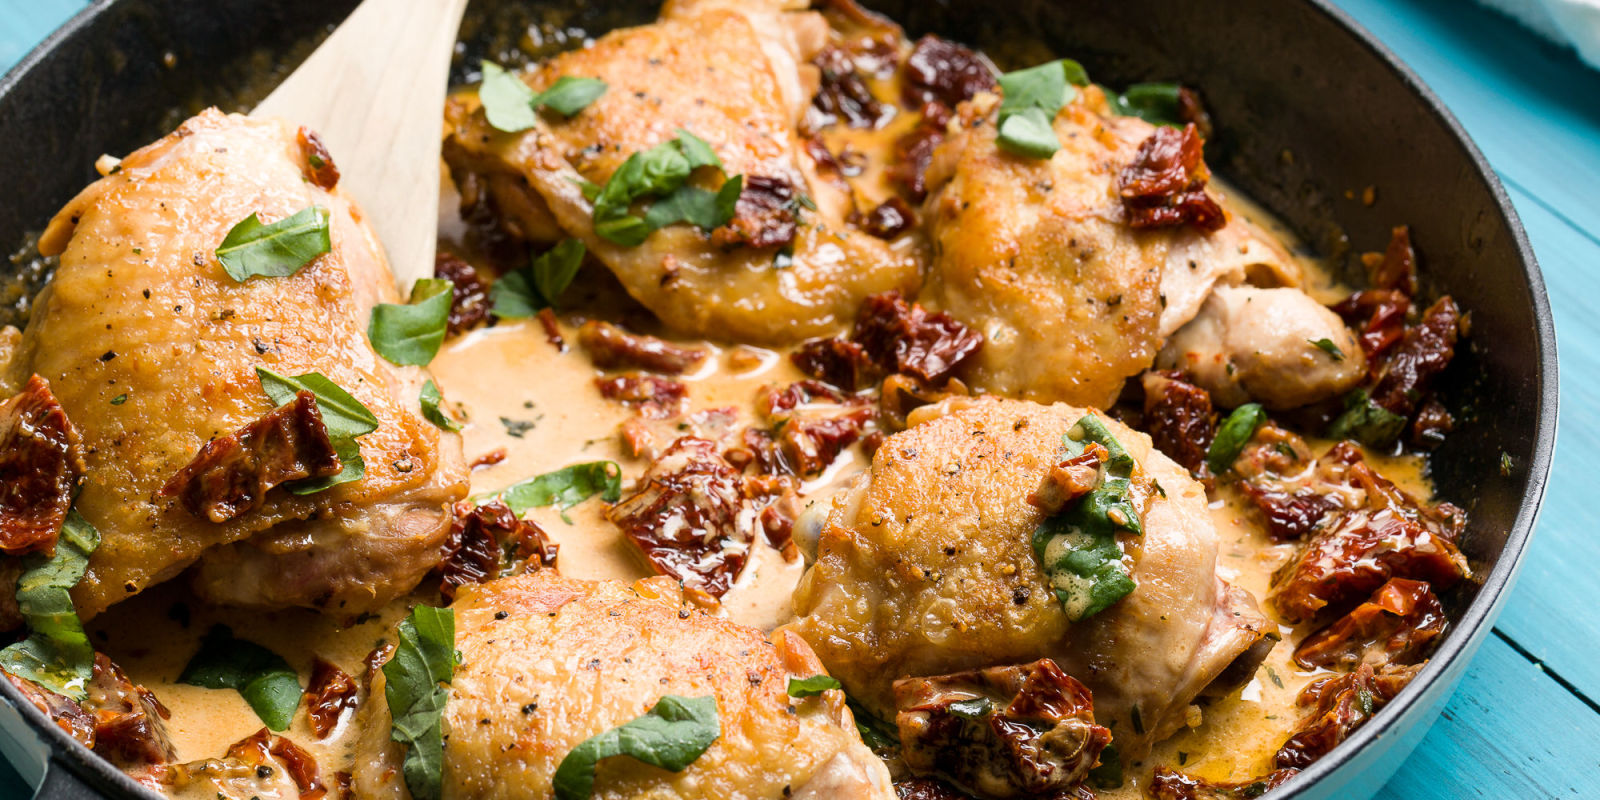 Baked Chicken Recipes Lemon Meals